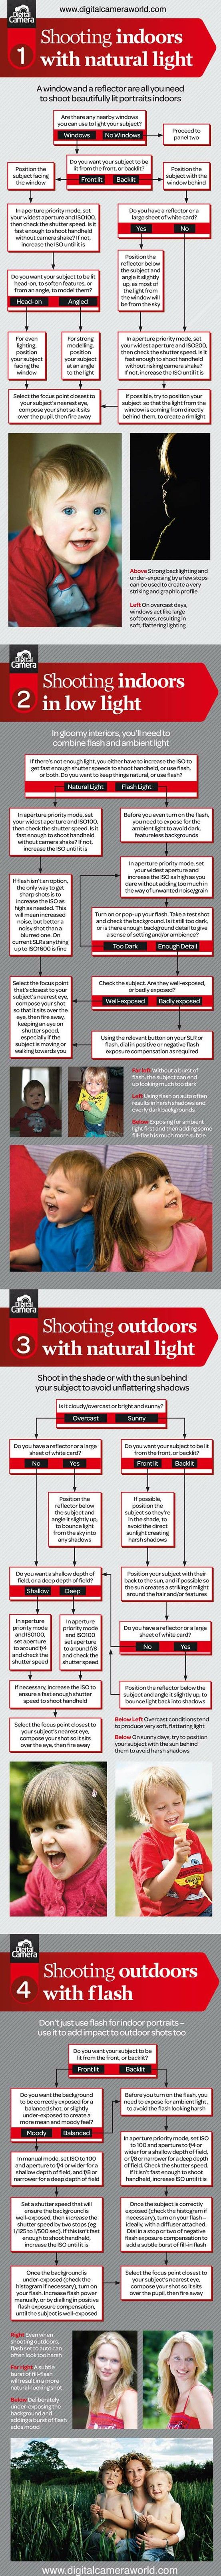 Shooting indoors with natural light (infographic from digital world)